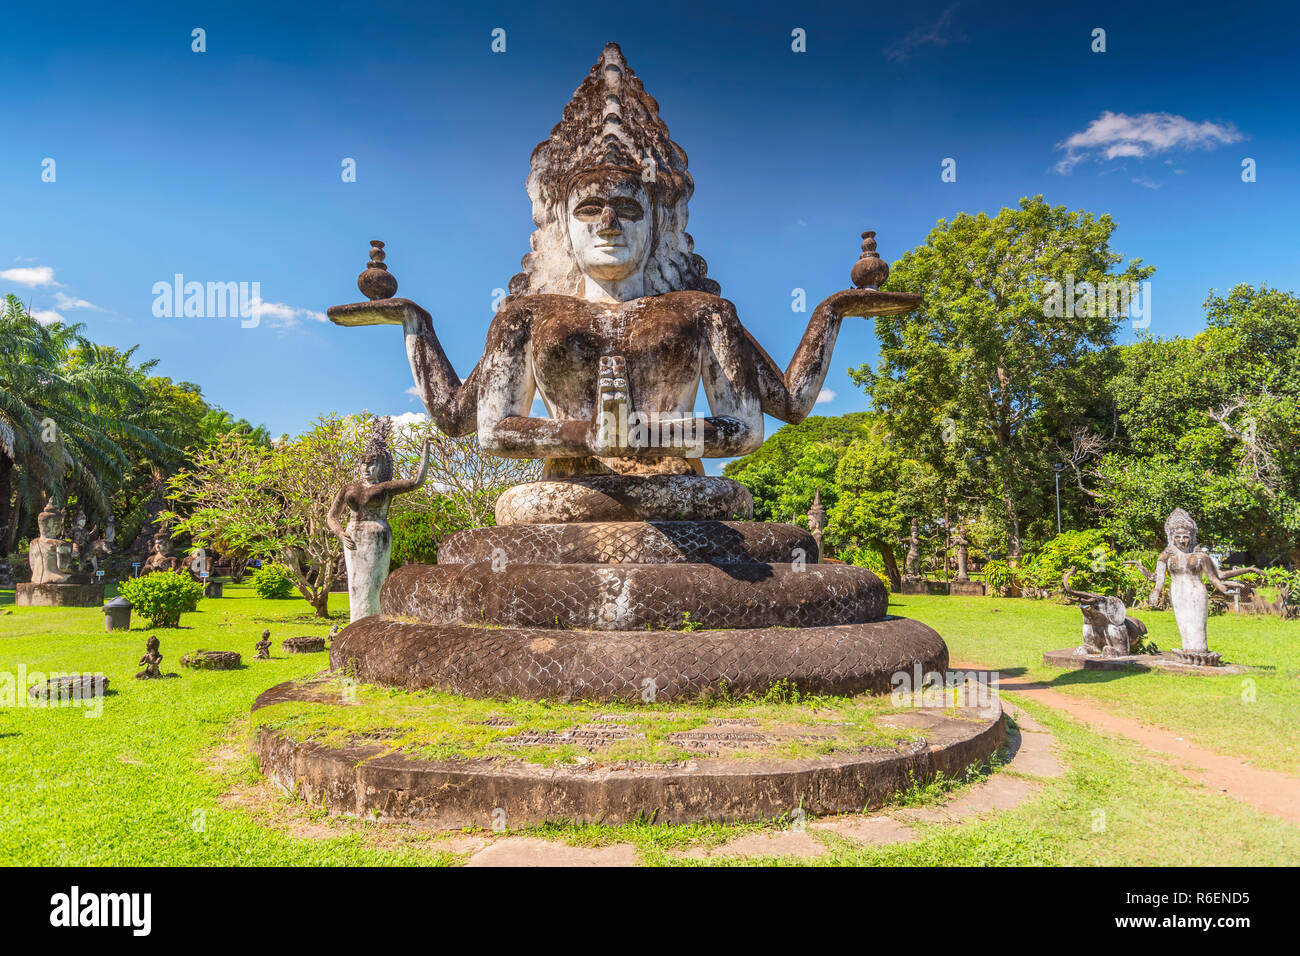 Buddha Statue In The Buddha Park, Xieng Khouan, Vientiane, Laos, Indochina, Asia Stock Photo